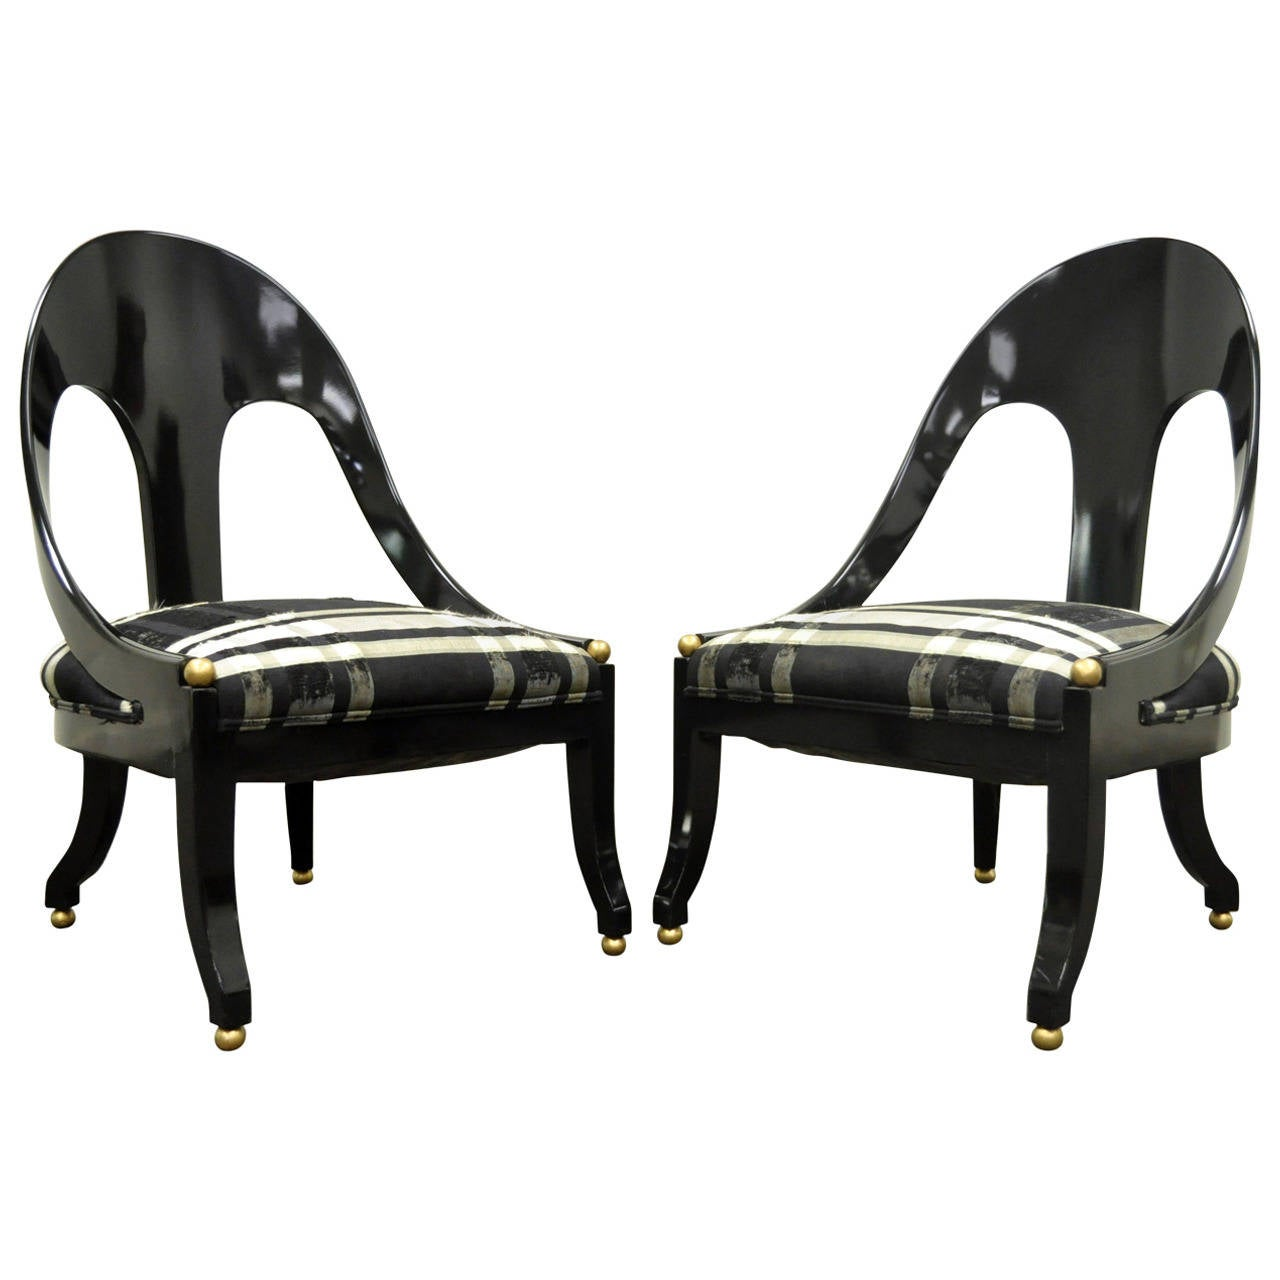 Pair of Michael Taylor for Baker Black Lacquer & Gold Spoon Back Slipper Chairs